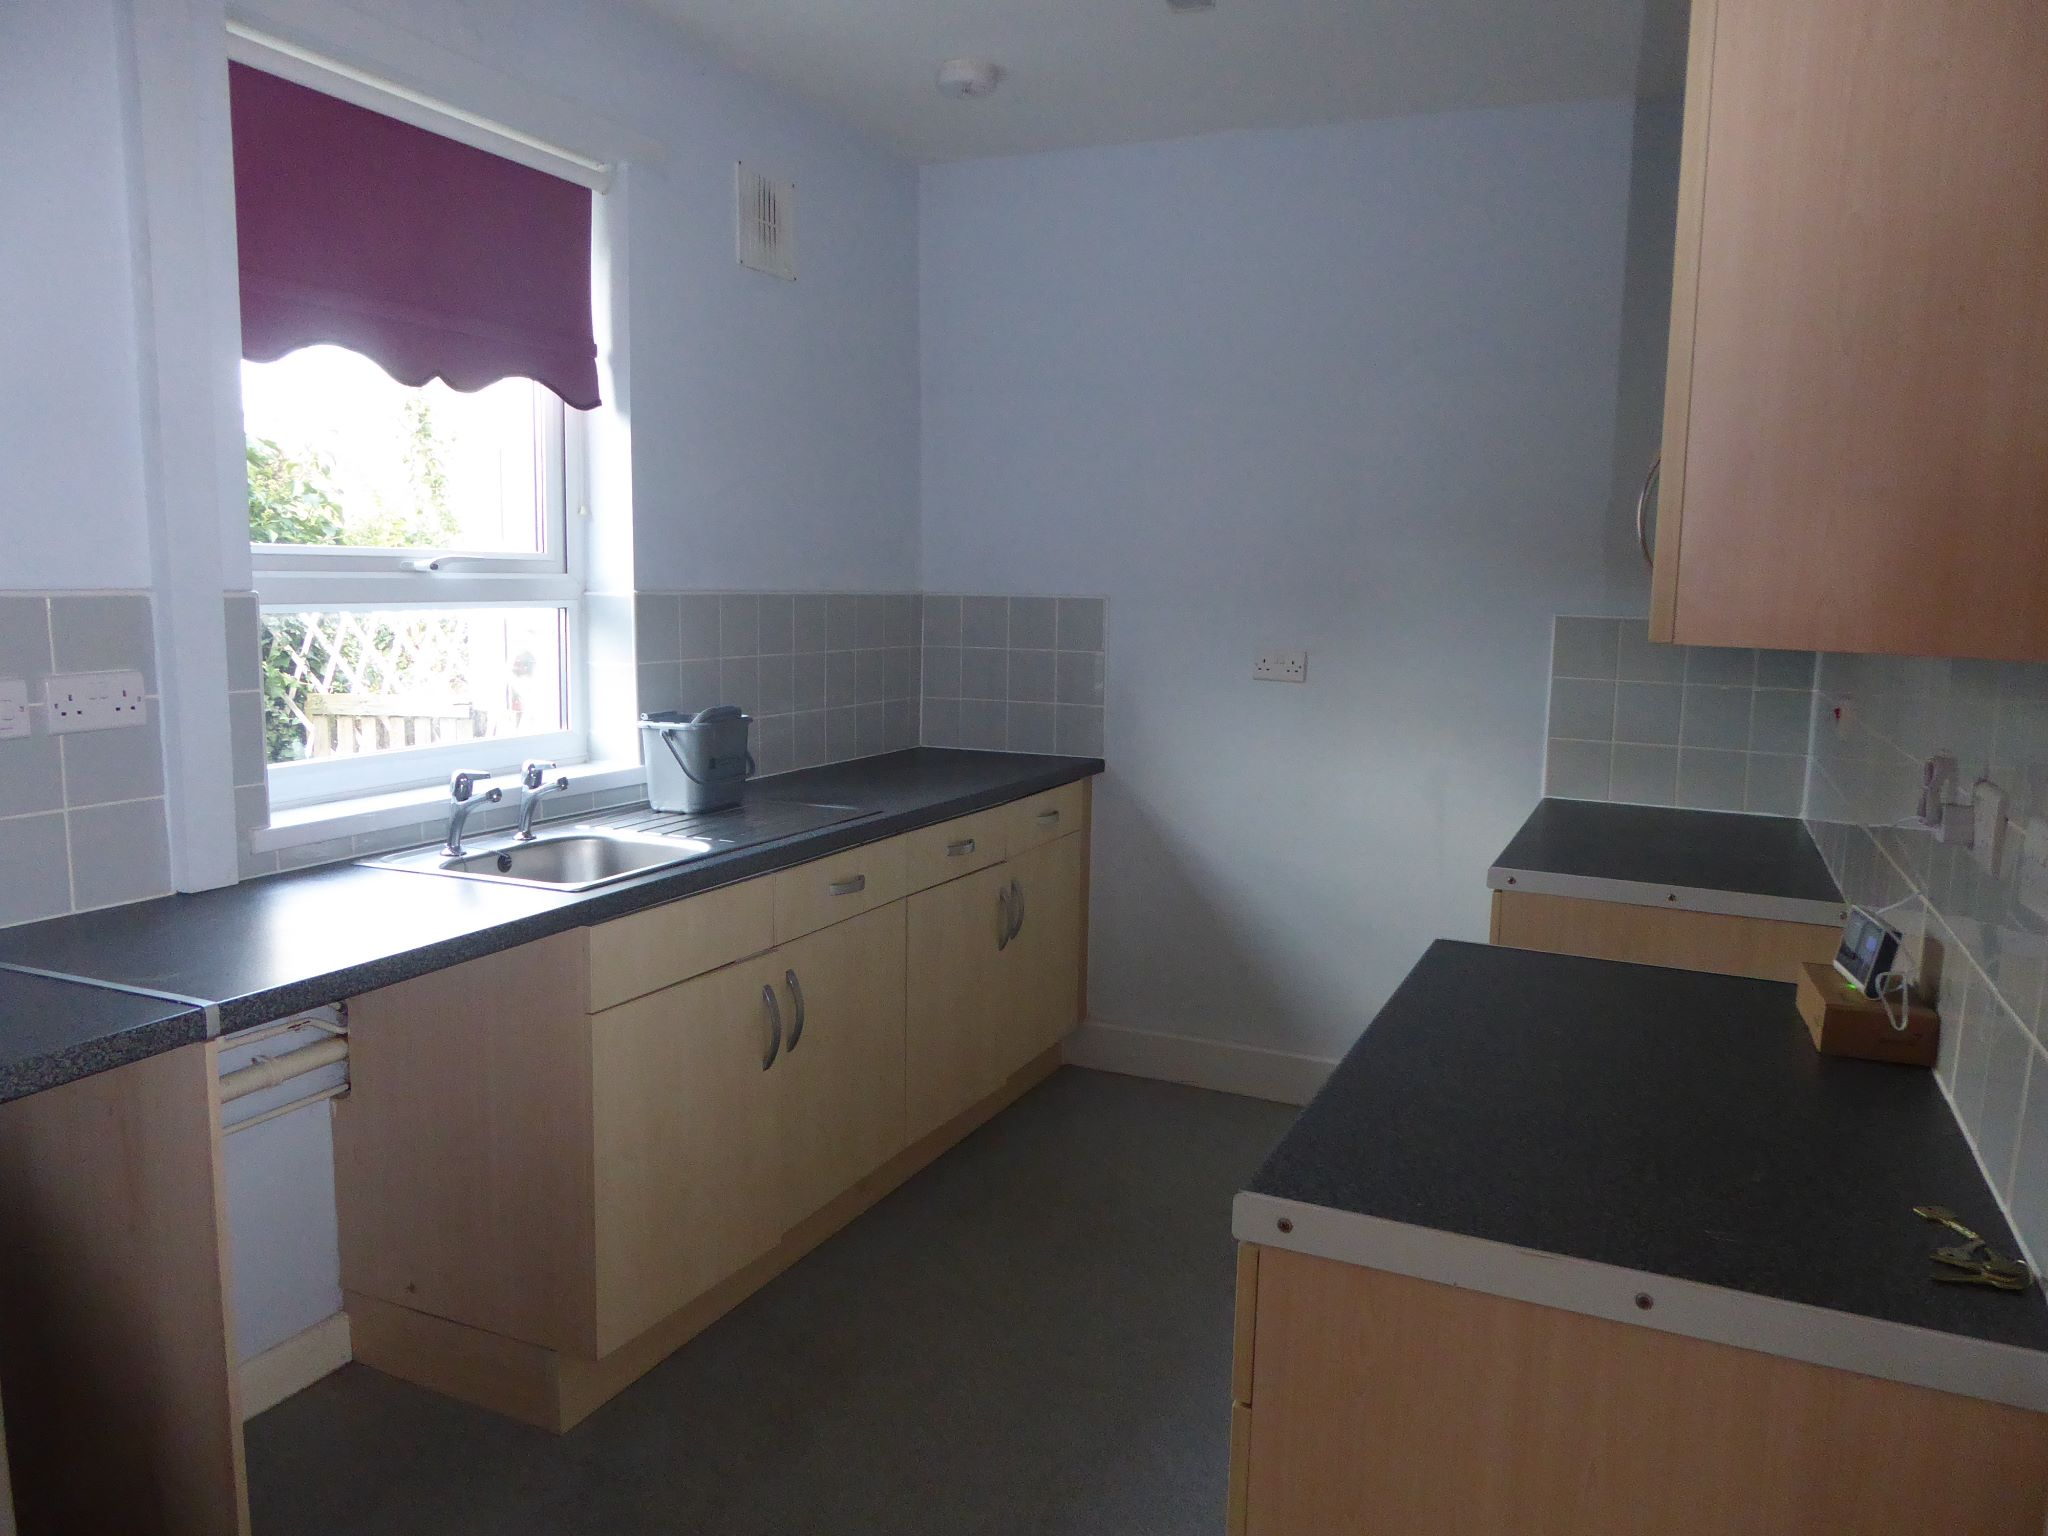 3 bedroom end terraced house SSTC in Abergele - Photograph 2